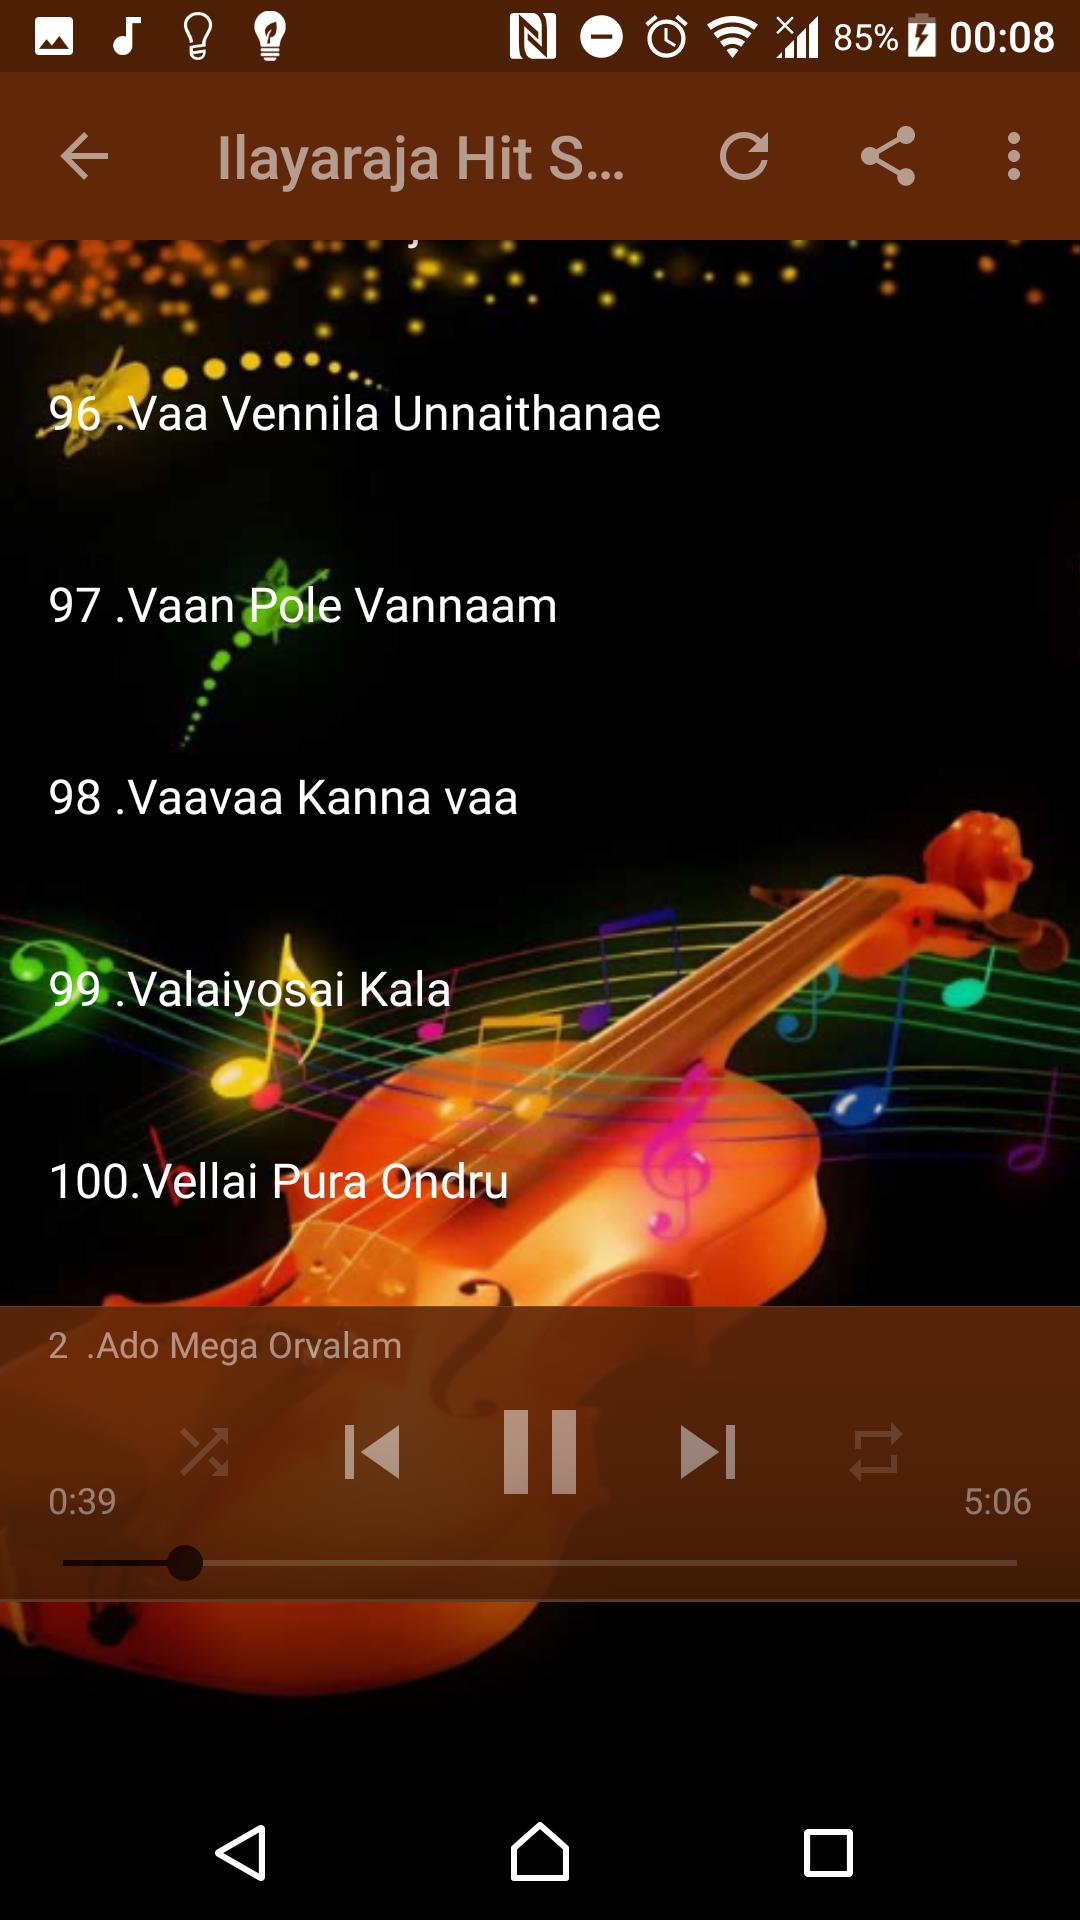 Ilayaraja Hit Songs for Android - APK Download